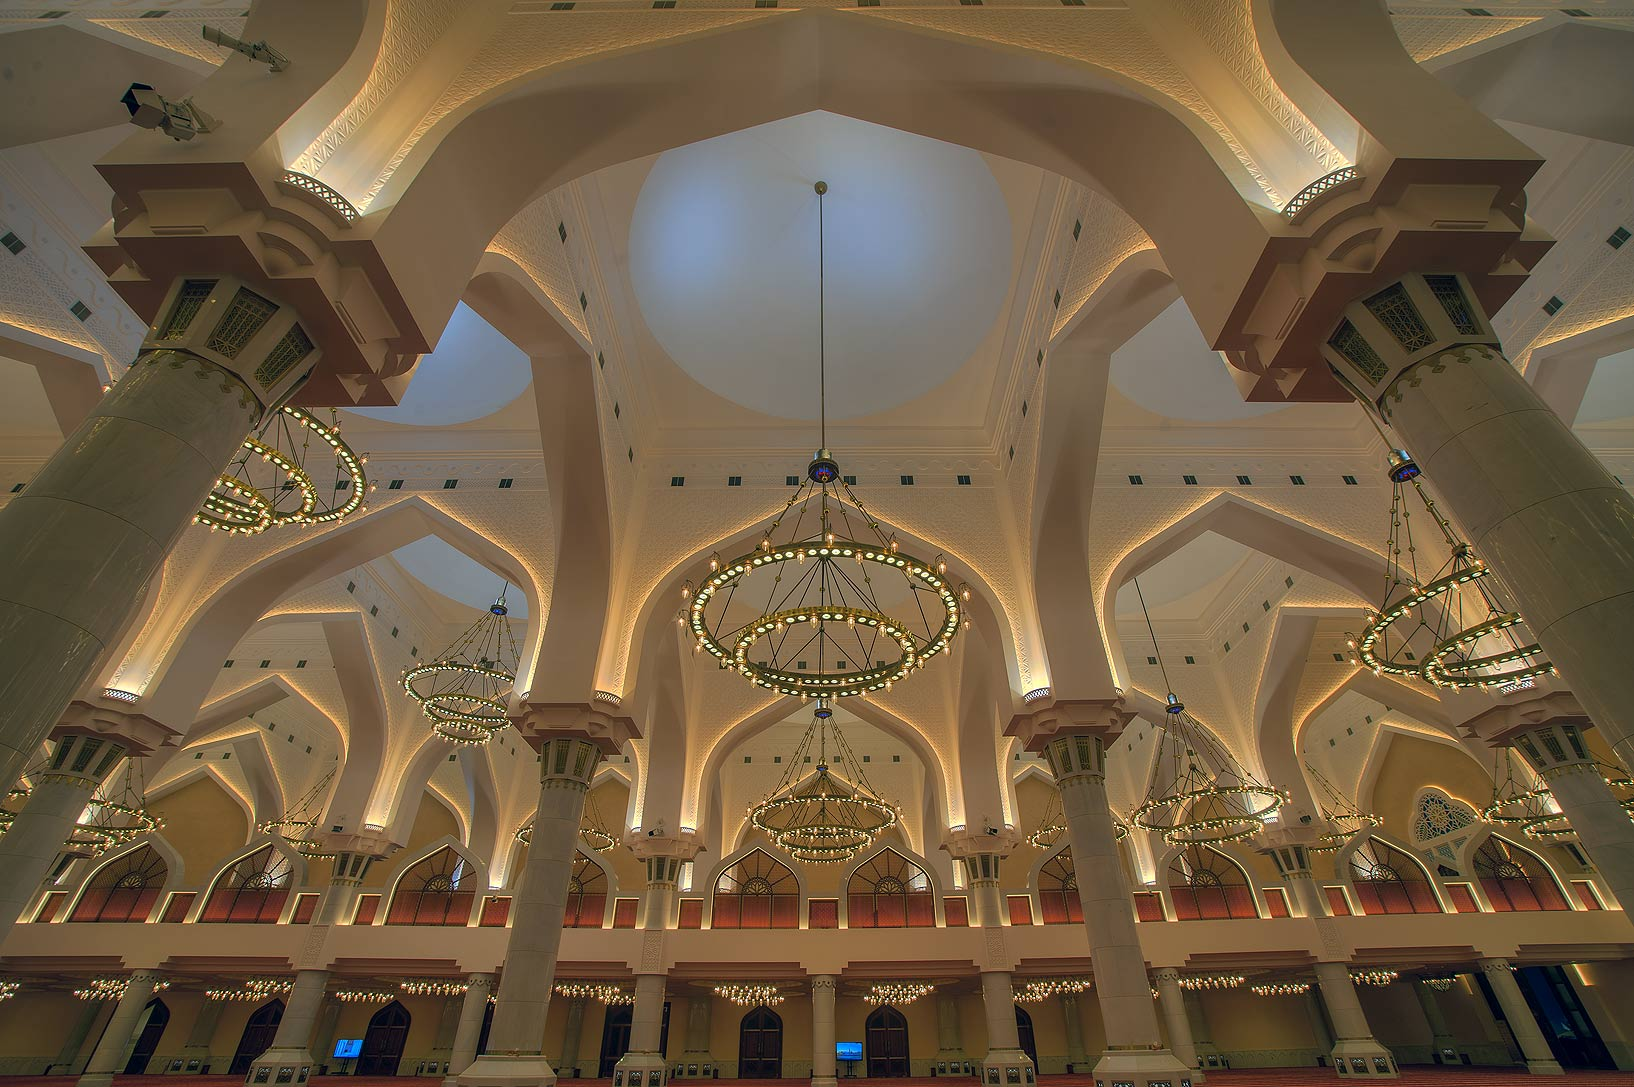 Vaulted ceiling of State Mosque (Sheikh Imam...Ibn Abdul Wahhab Mosque). Doha, Qatar